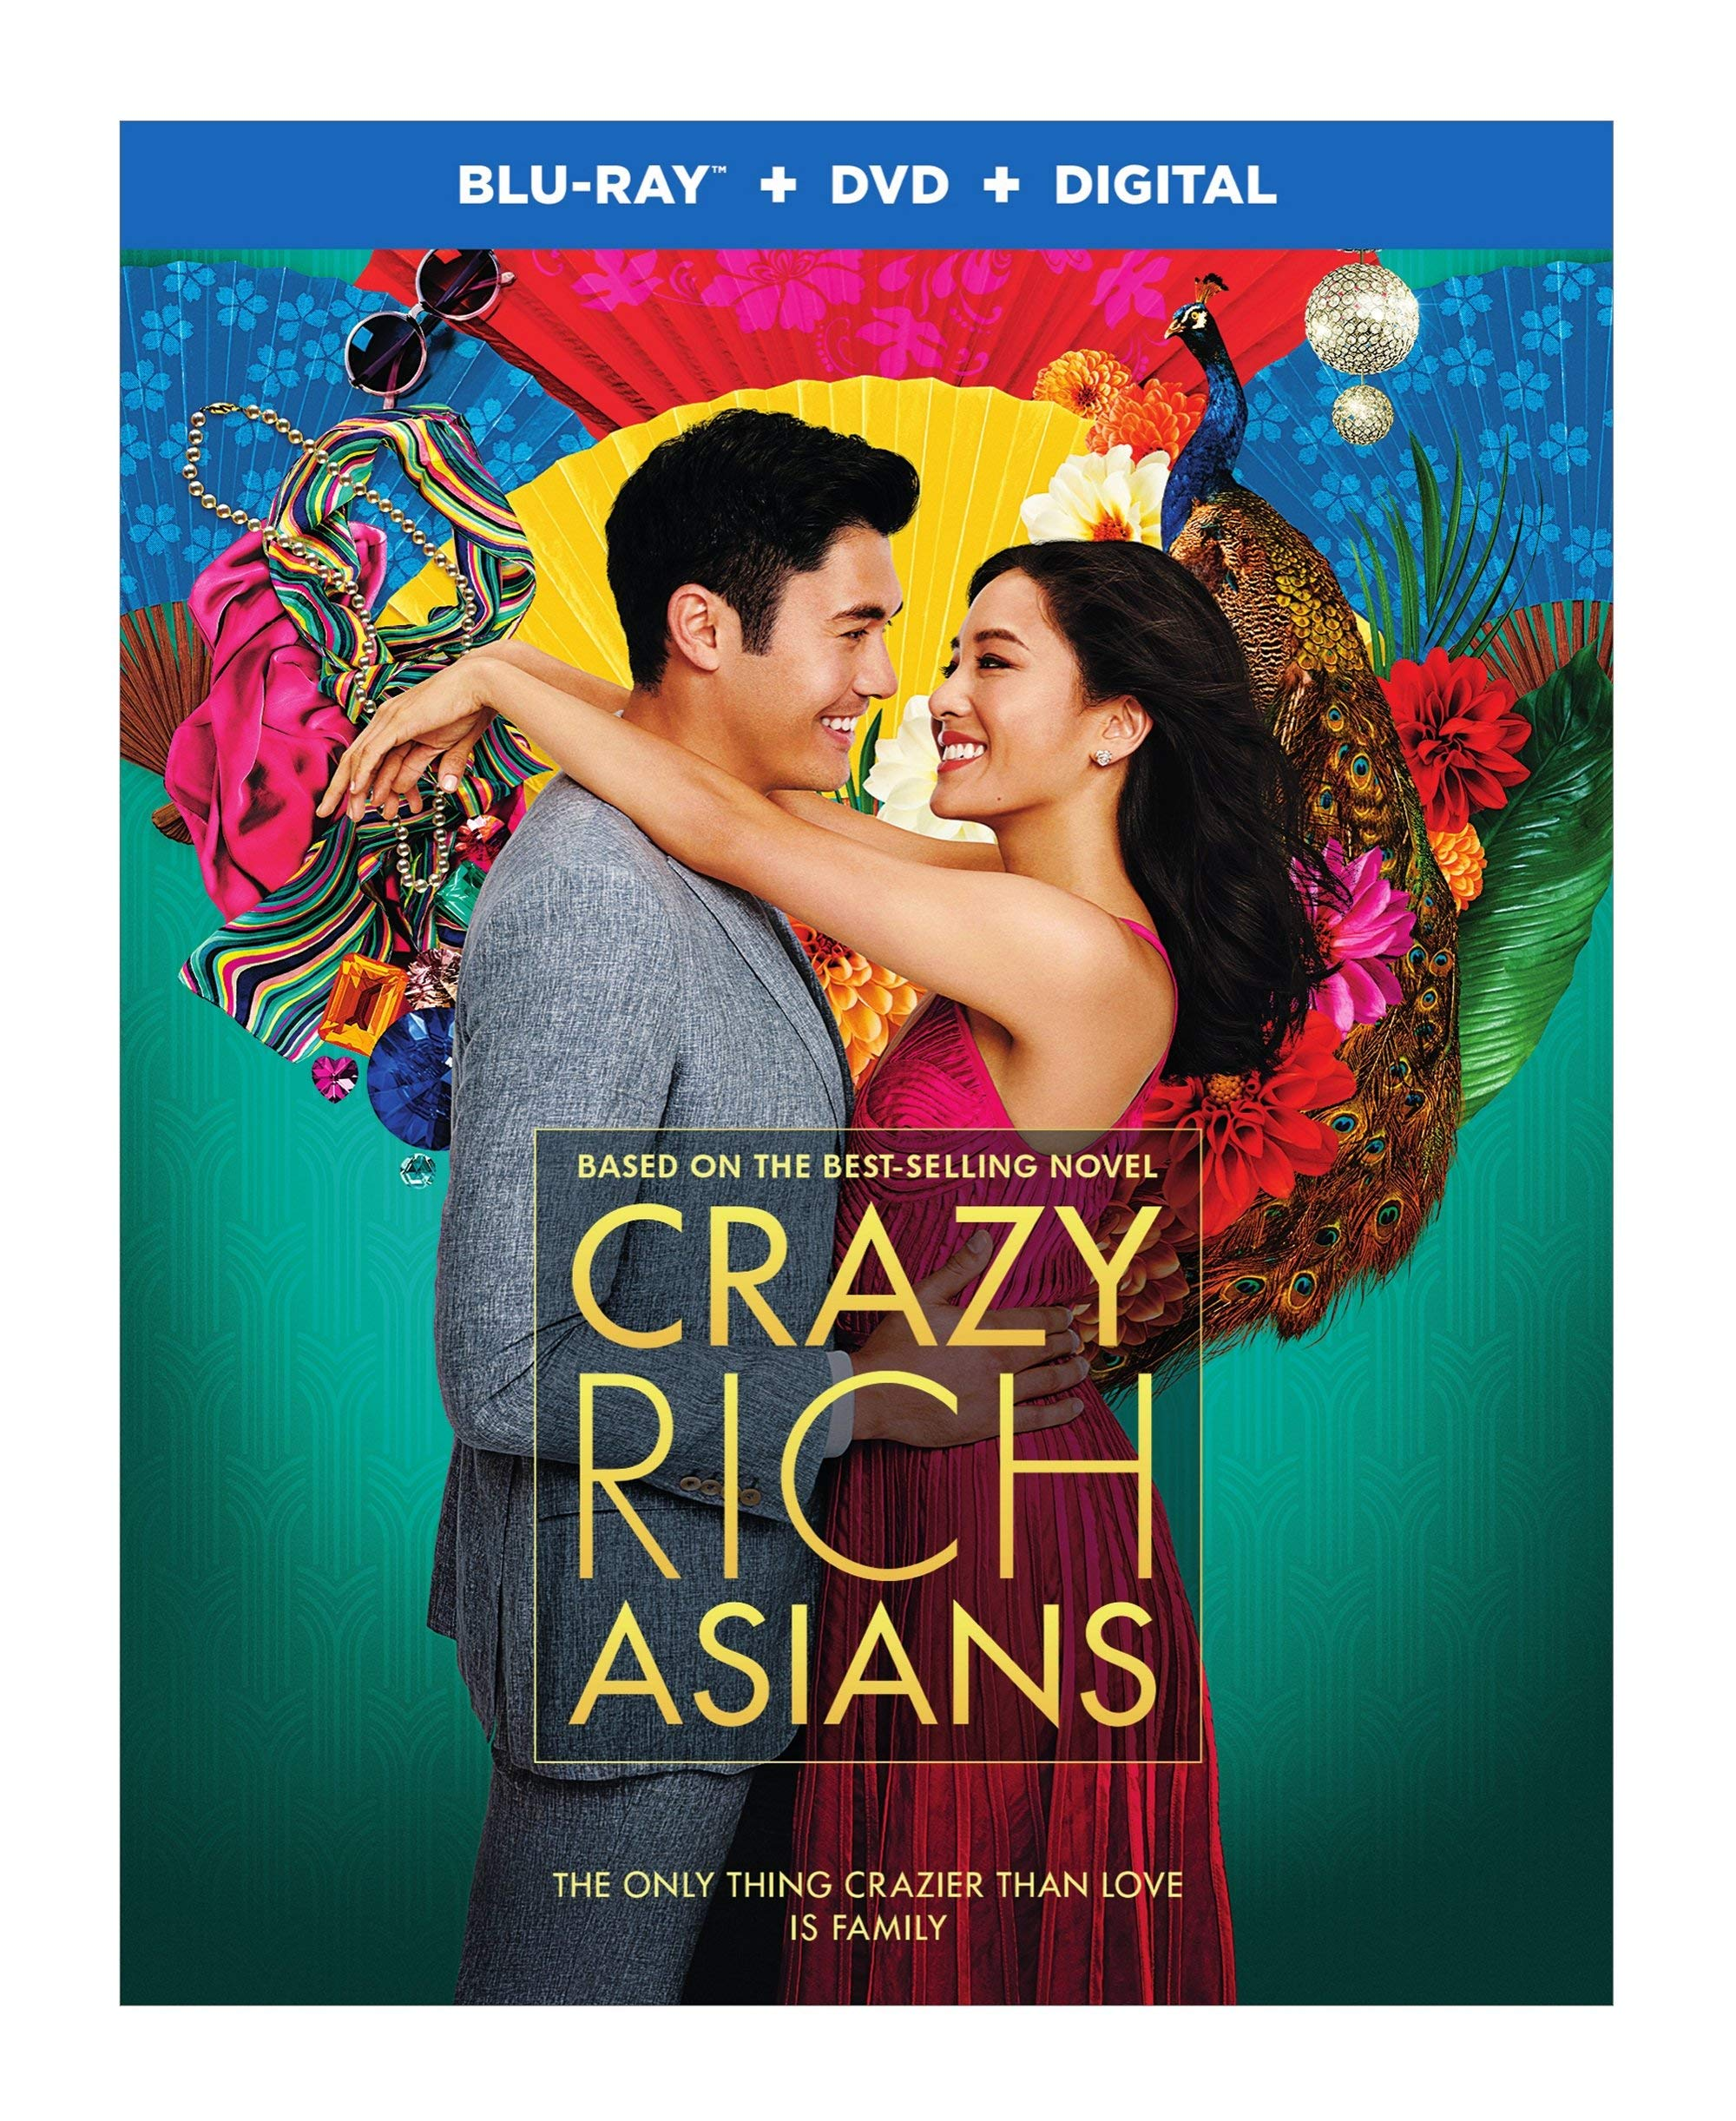 Buy Crazy Rich Asians Now!